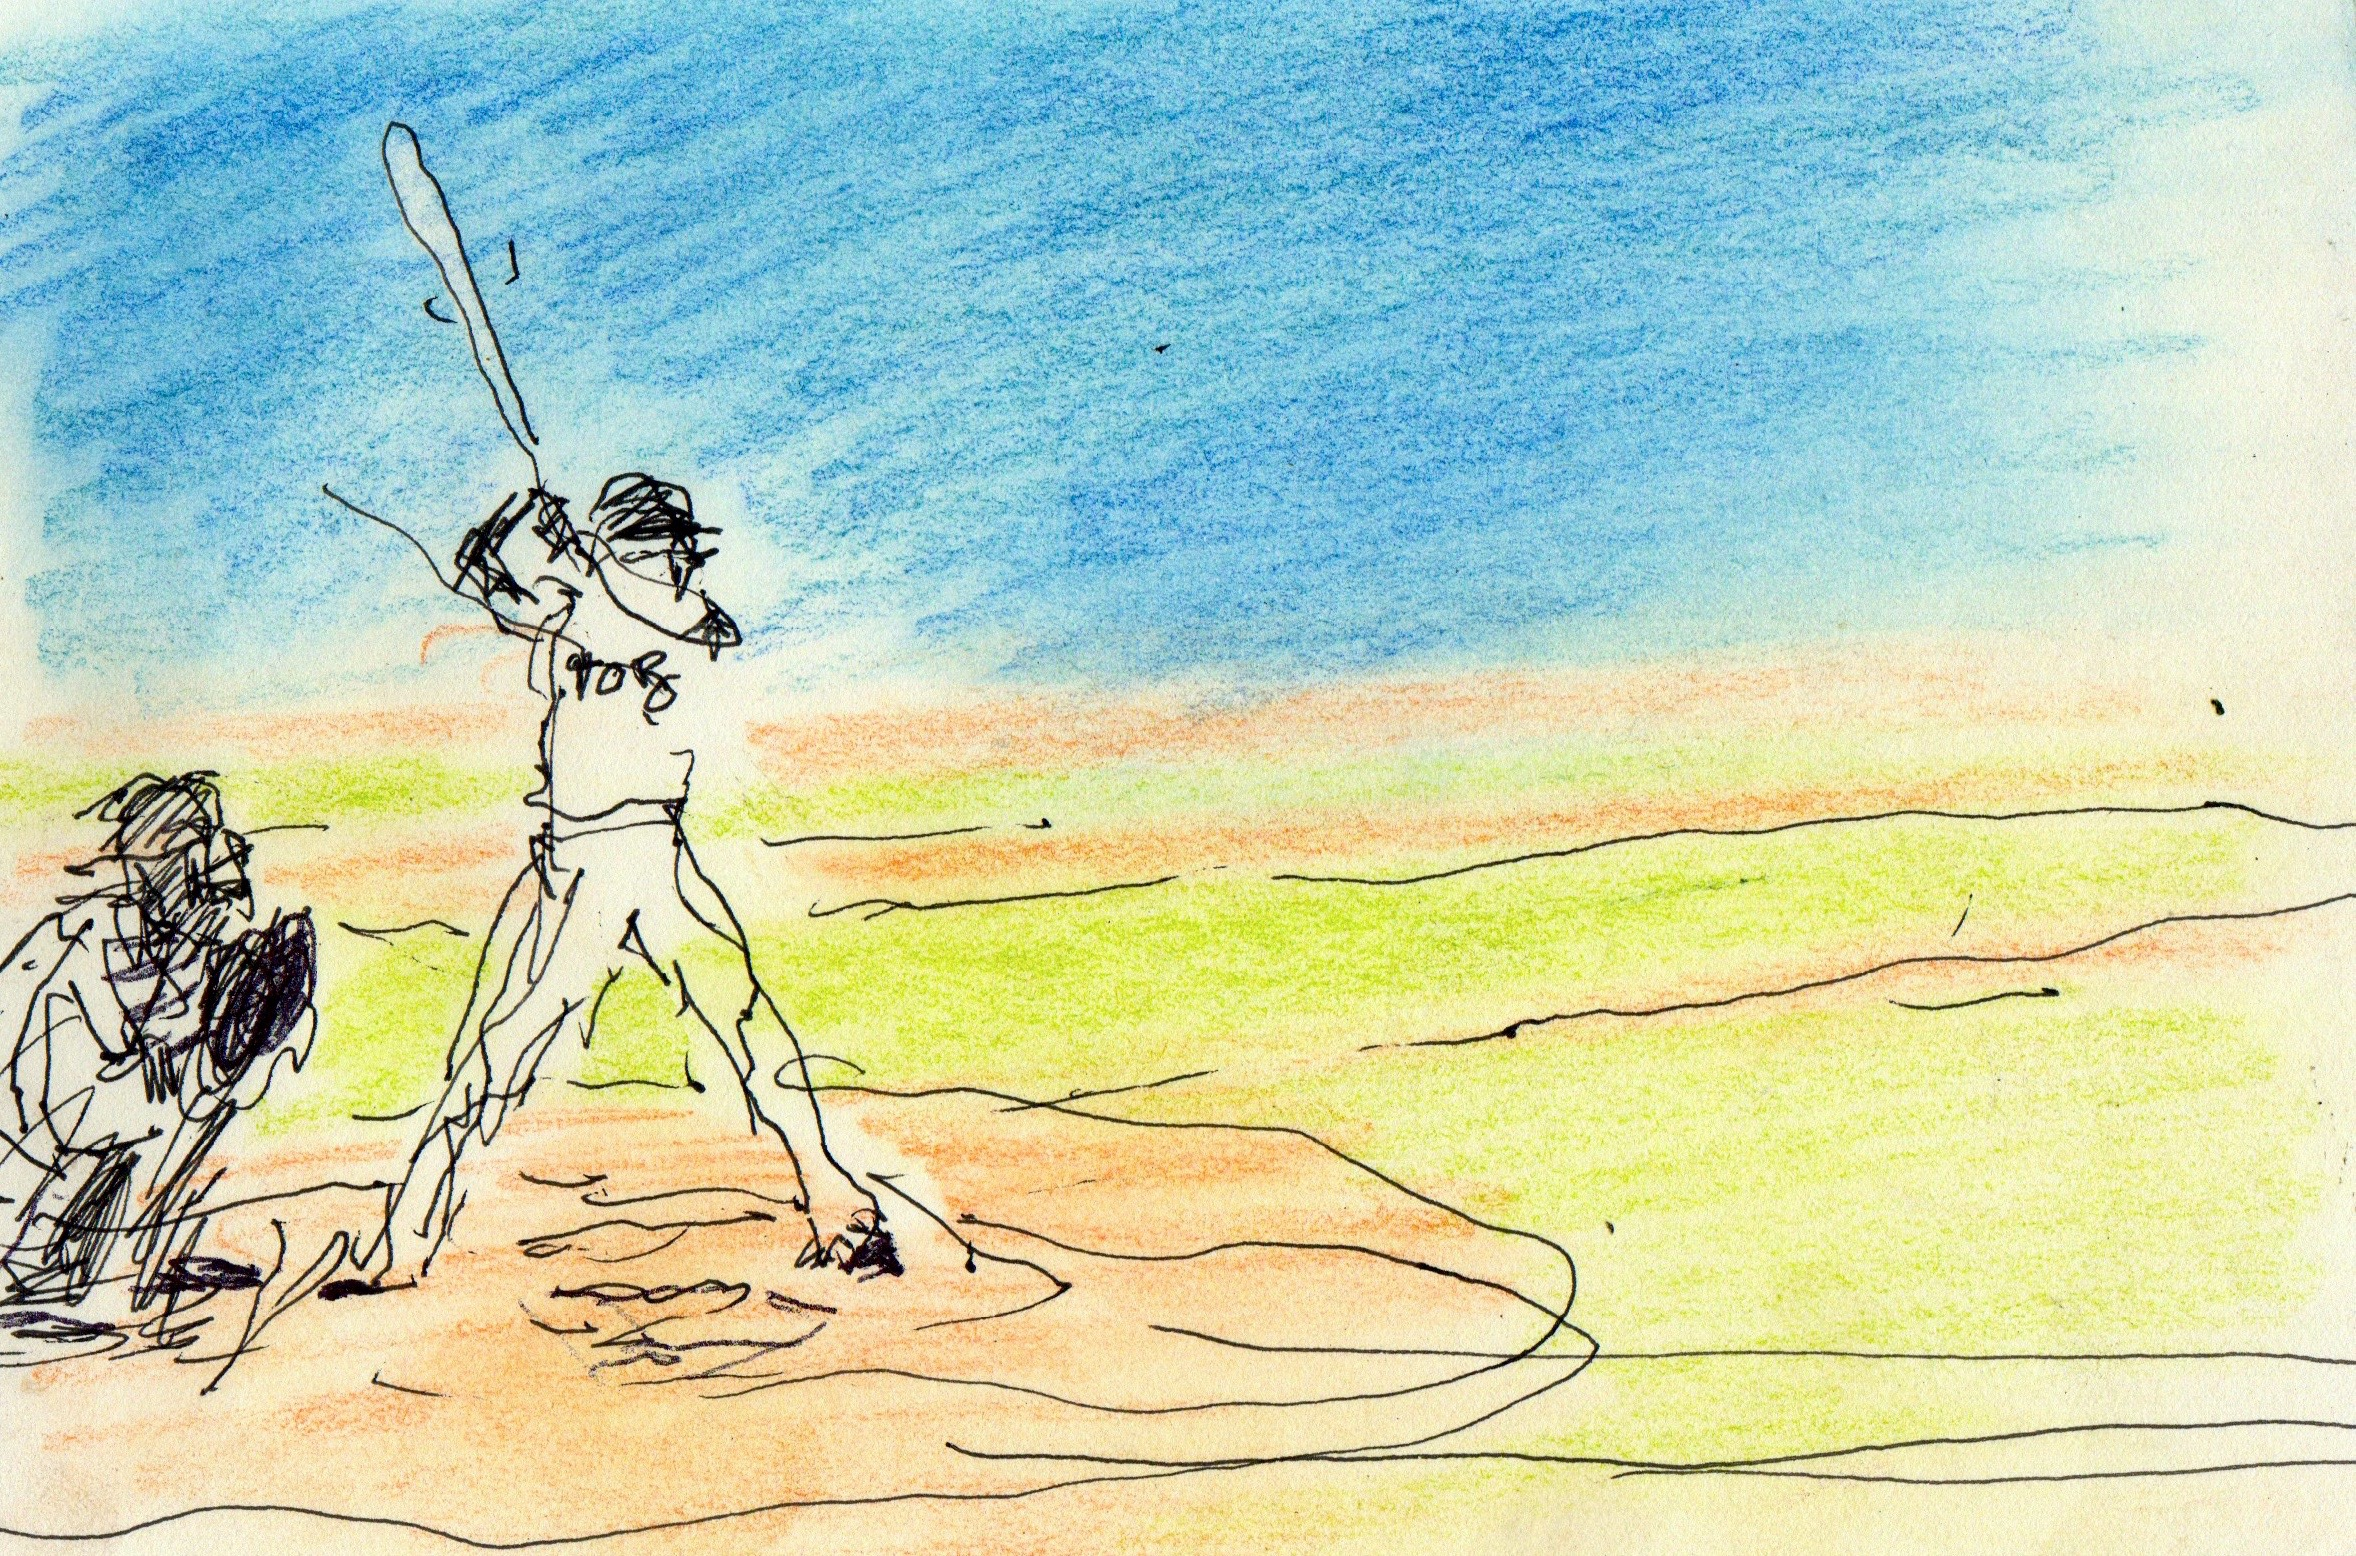 Andy Rush's color and ink sketch of baseball